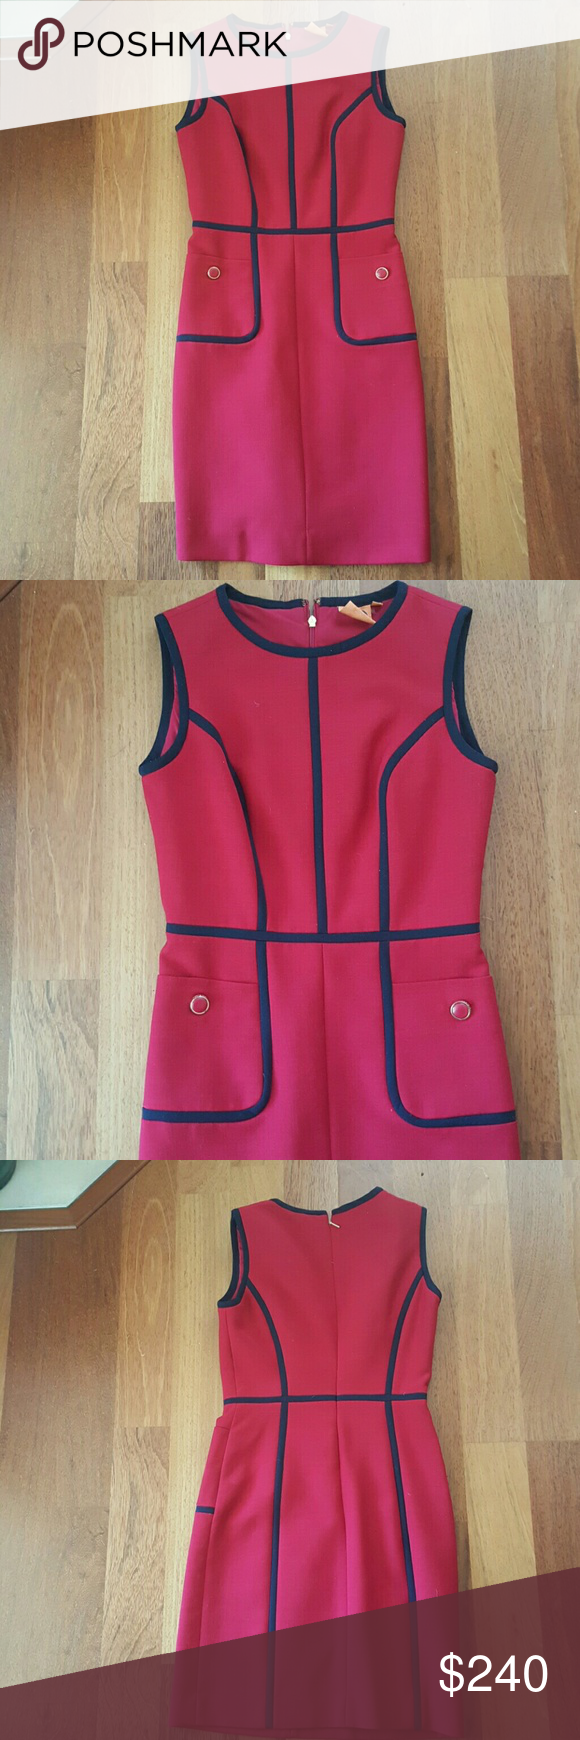 """Tory Burch """"Flora"""" sleeveless dress Shell: wool, polyester, spandex, fully lined, TB logo buttons Tory Burch Dresses Midi"""